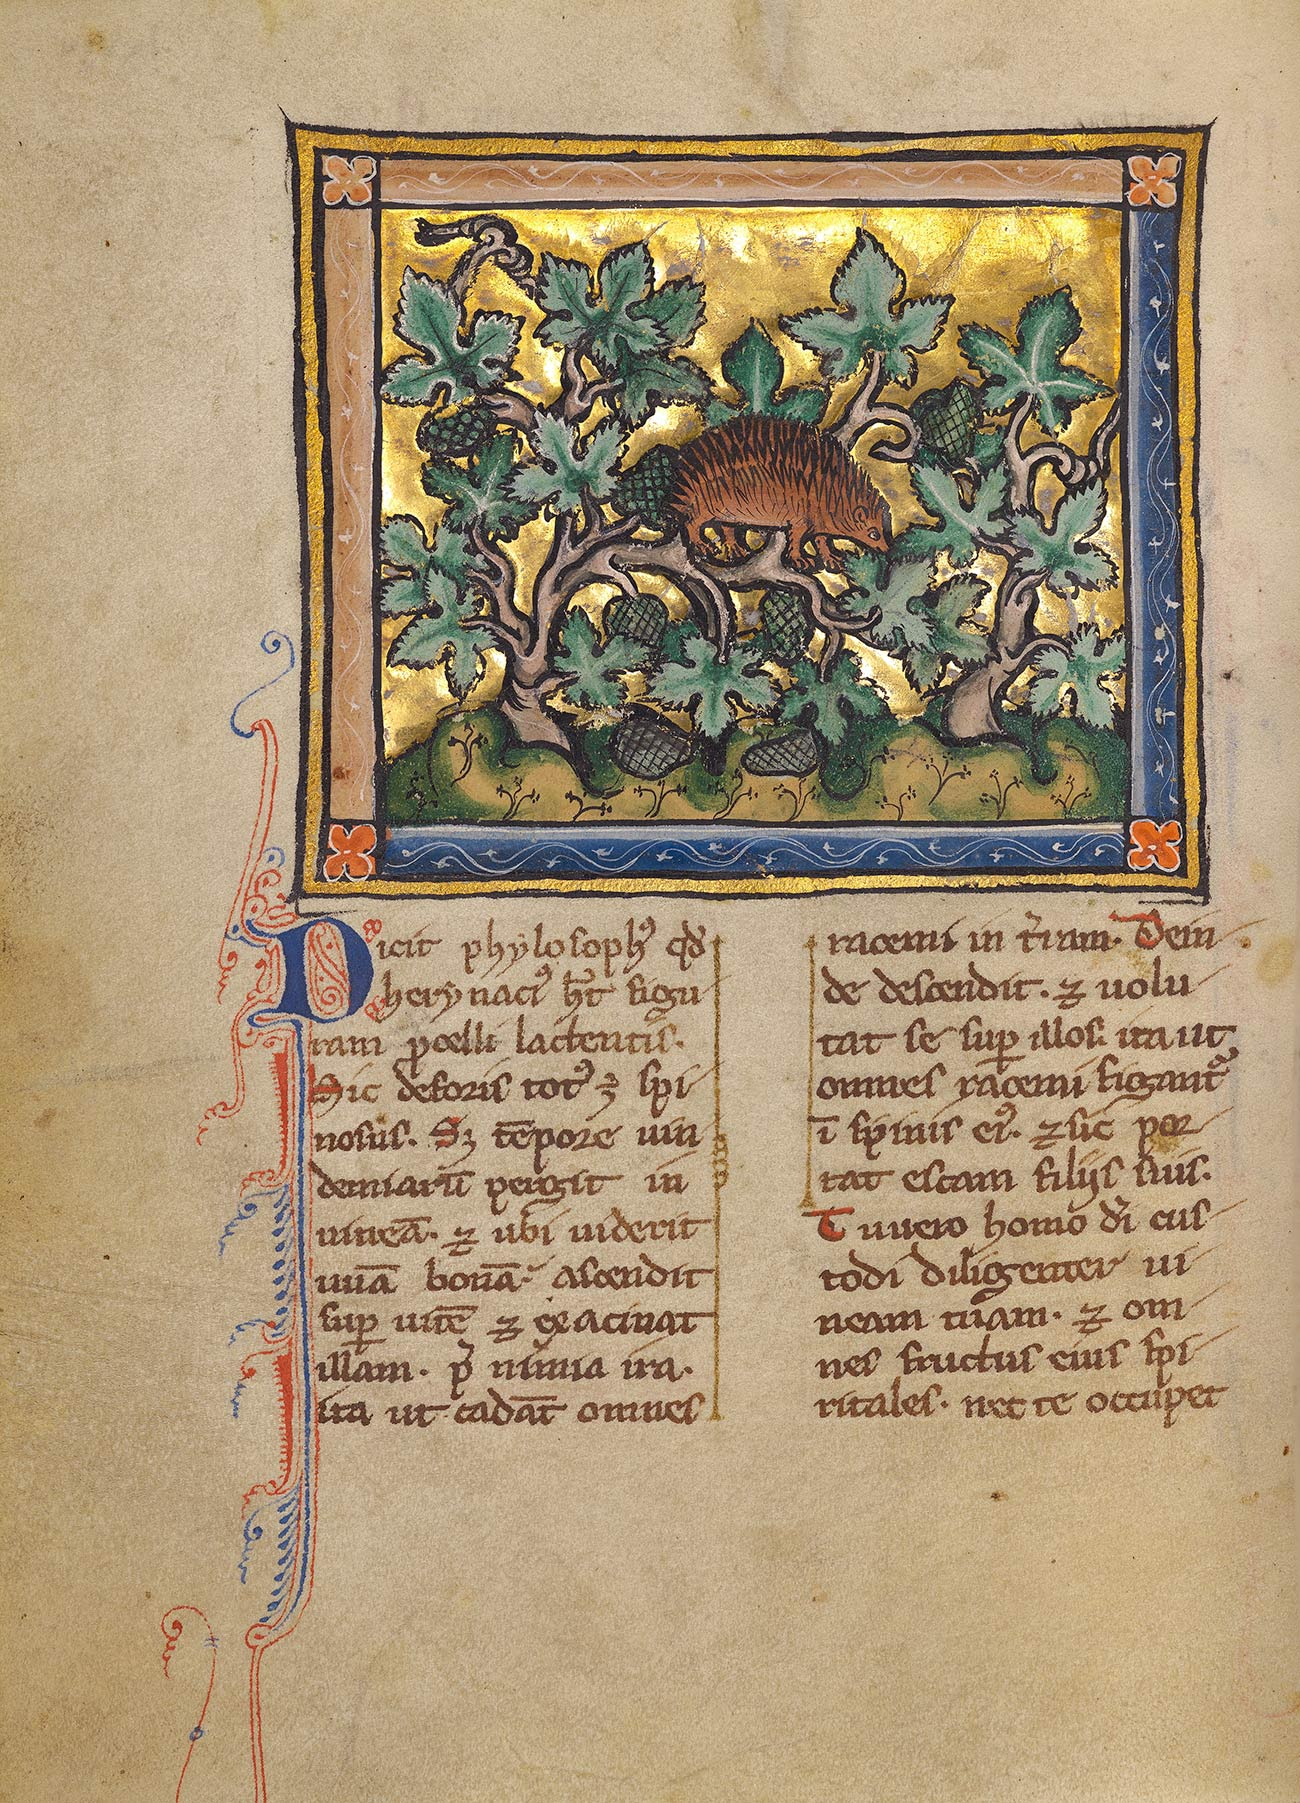 An ornate manuscript page. At top, a single four-legged, brown creature facing right with several rows of spines is in the middle of a composition of brown vines, green leaves, and green pine cones.